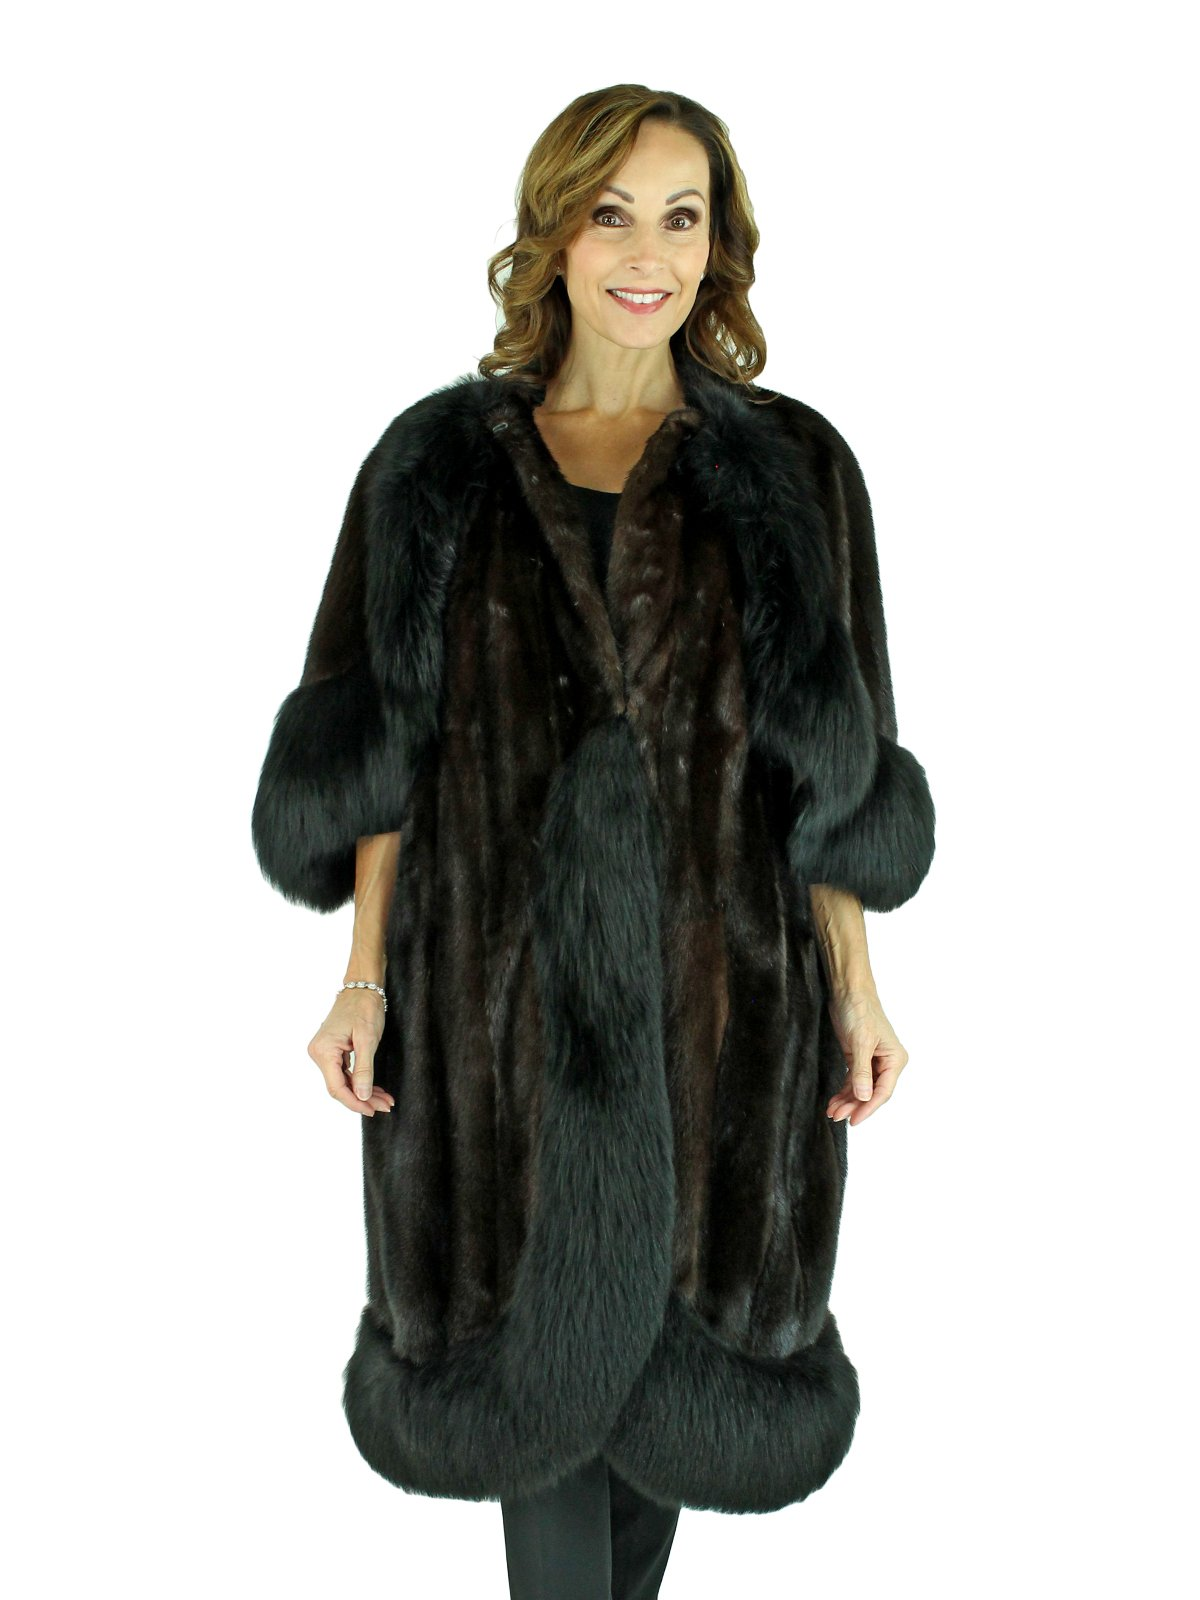 Woman's 'Opera' Mink Fur Coat with Cape Overlay and Fox Trim